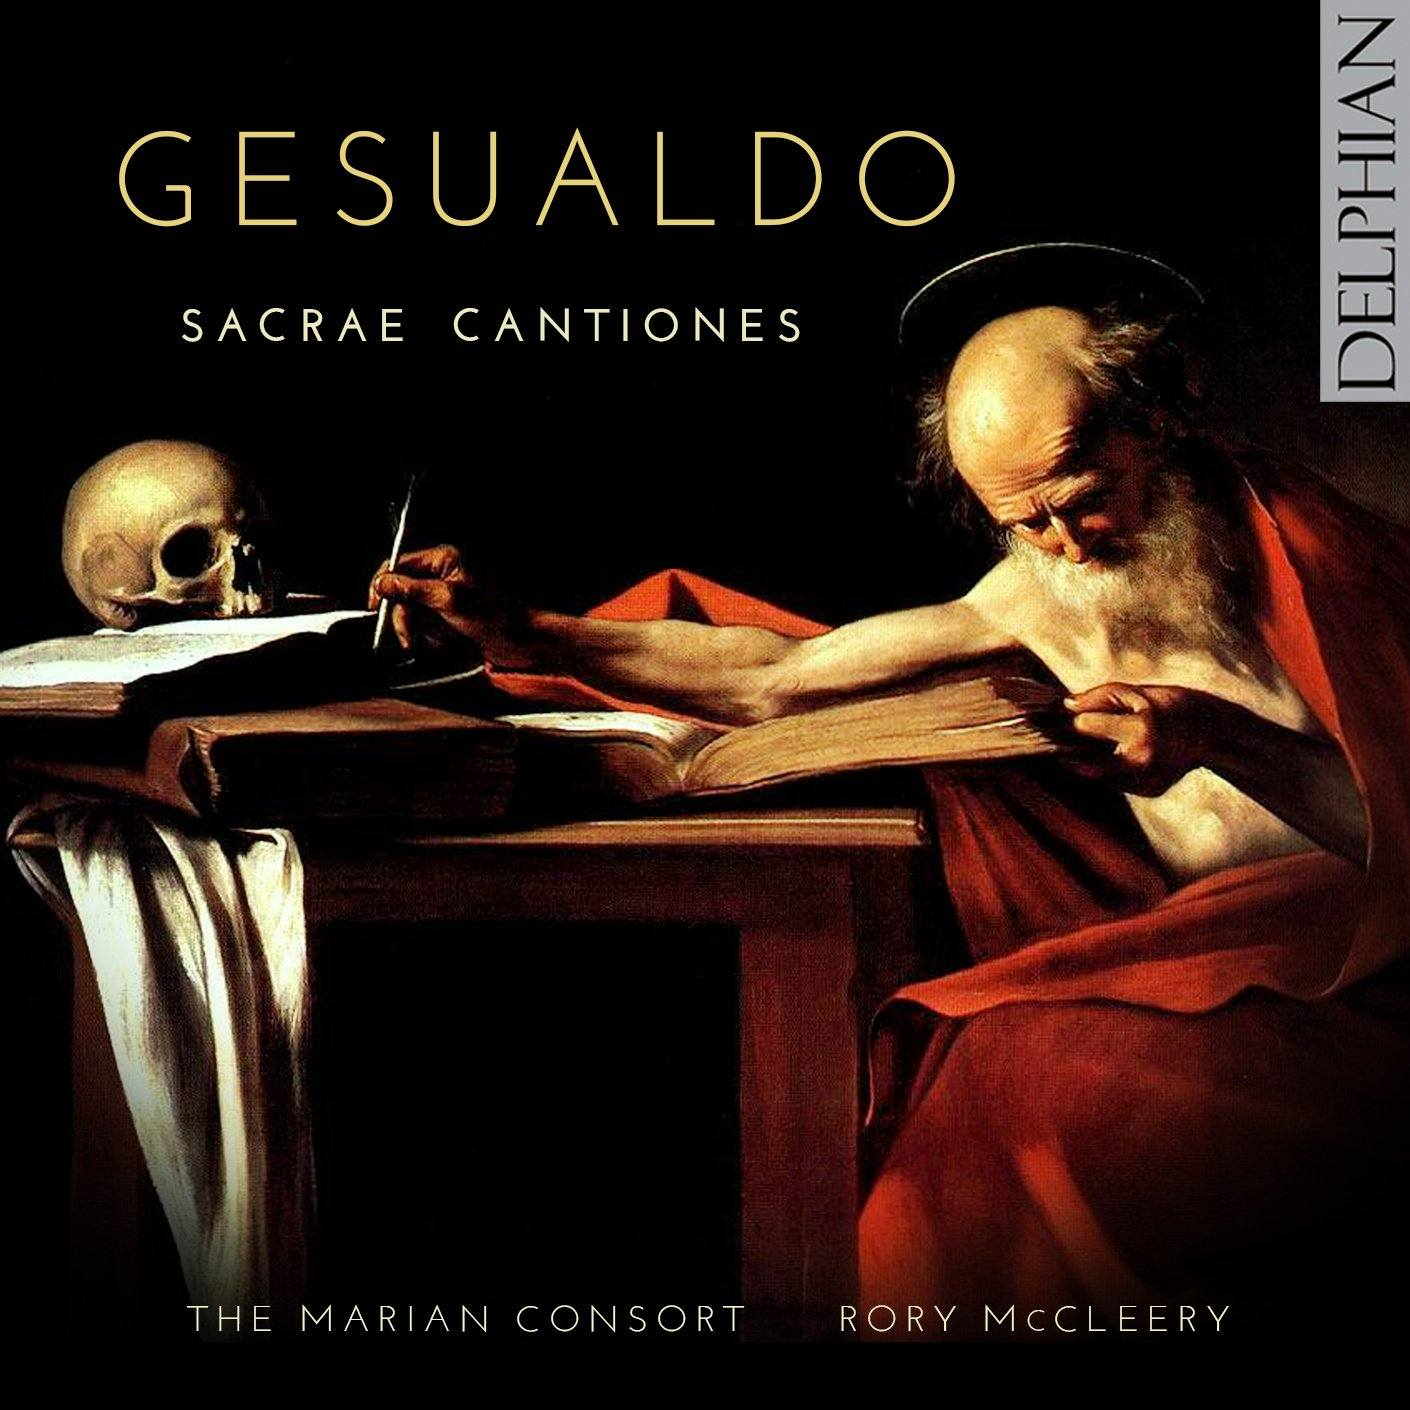 Gesualdo: Sacrae Cantiones CD Delphian Records